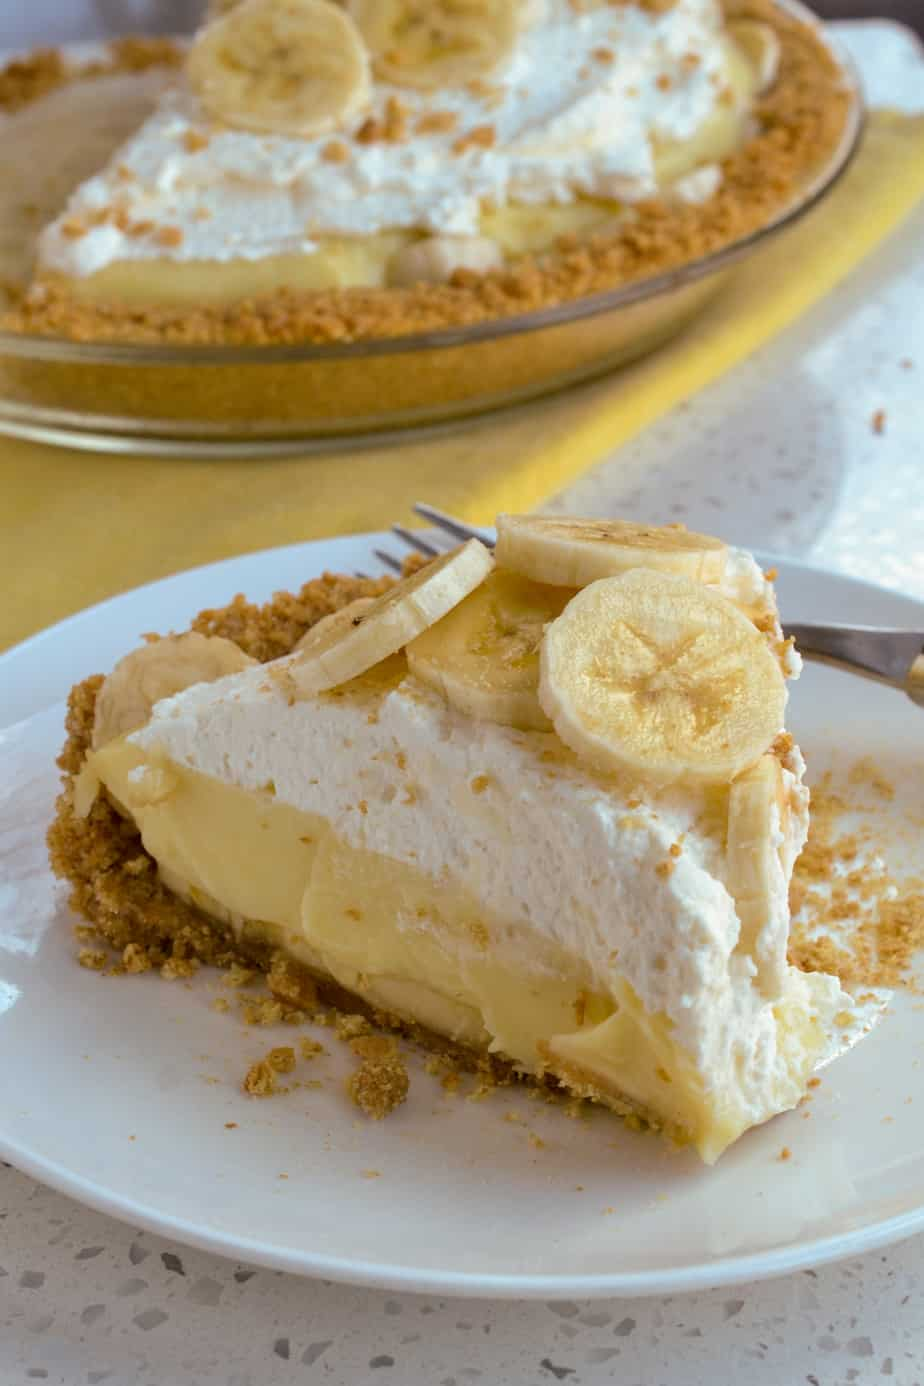 Banana pie topped with fresh whipped cream and banana slices.